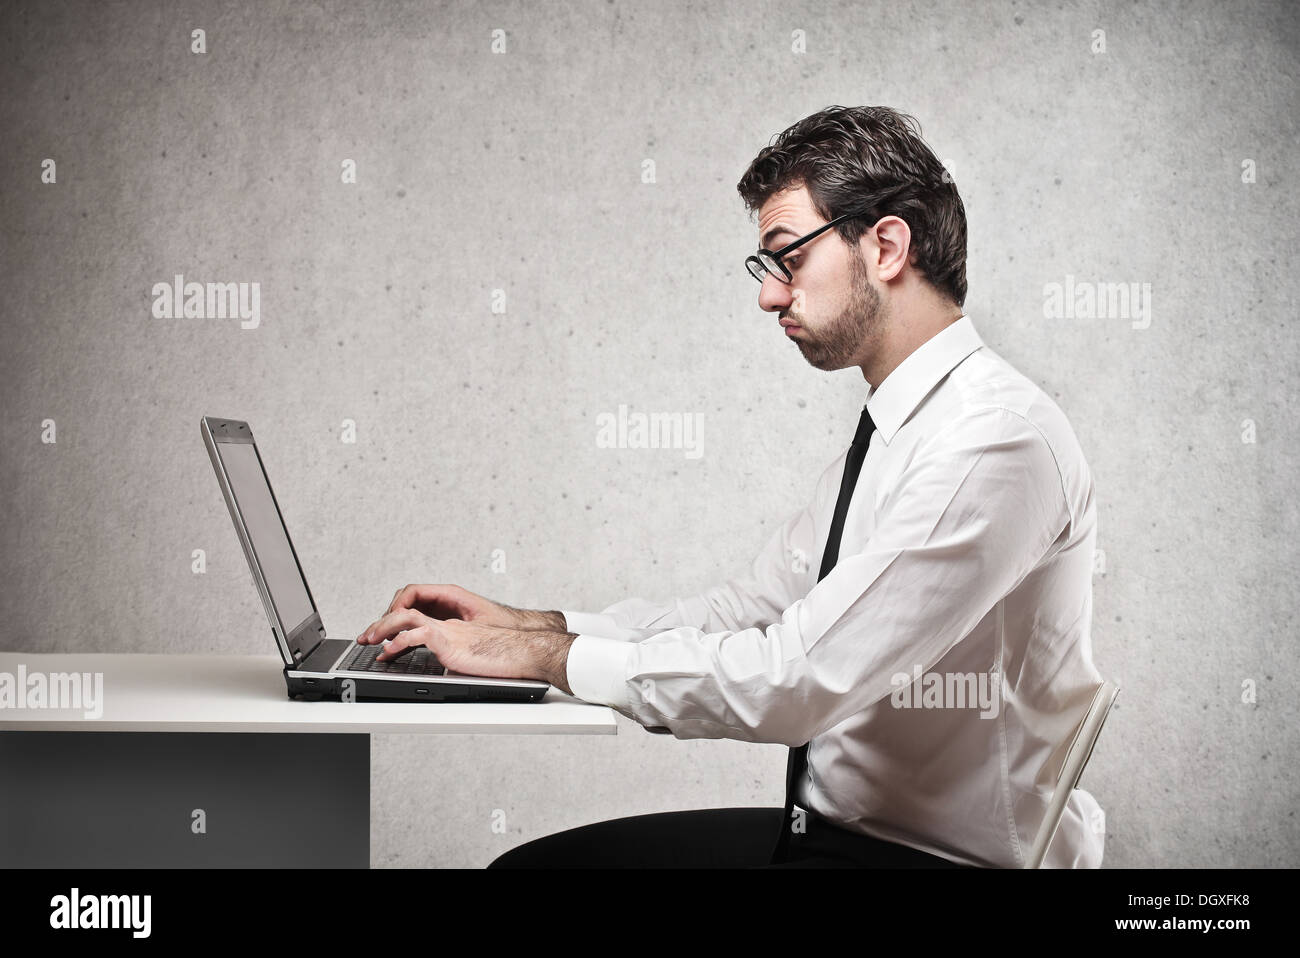 Office worker using a laptop Photo Stock